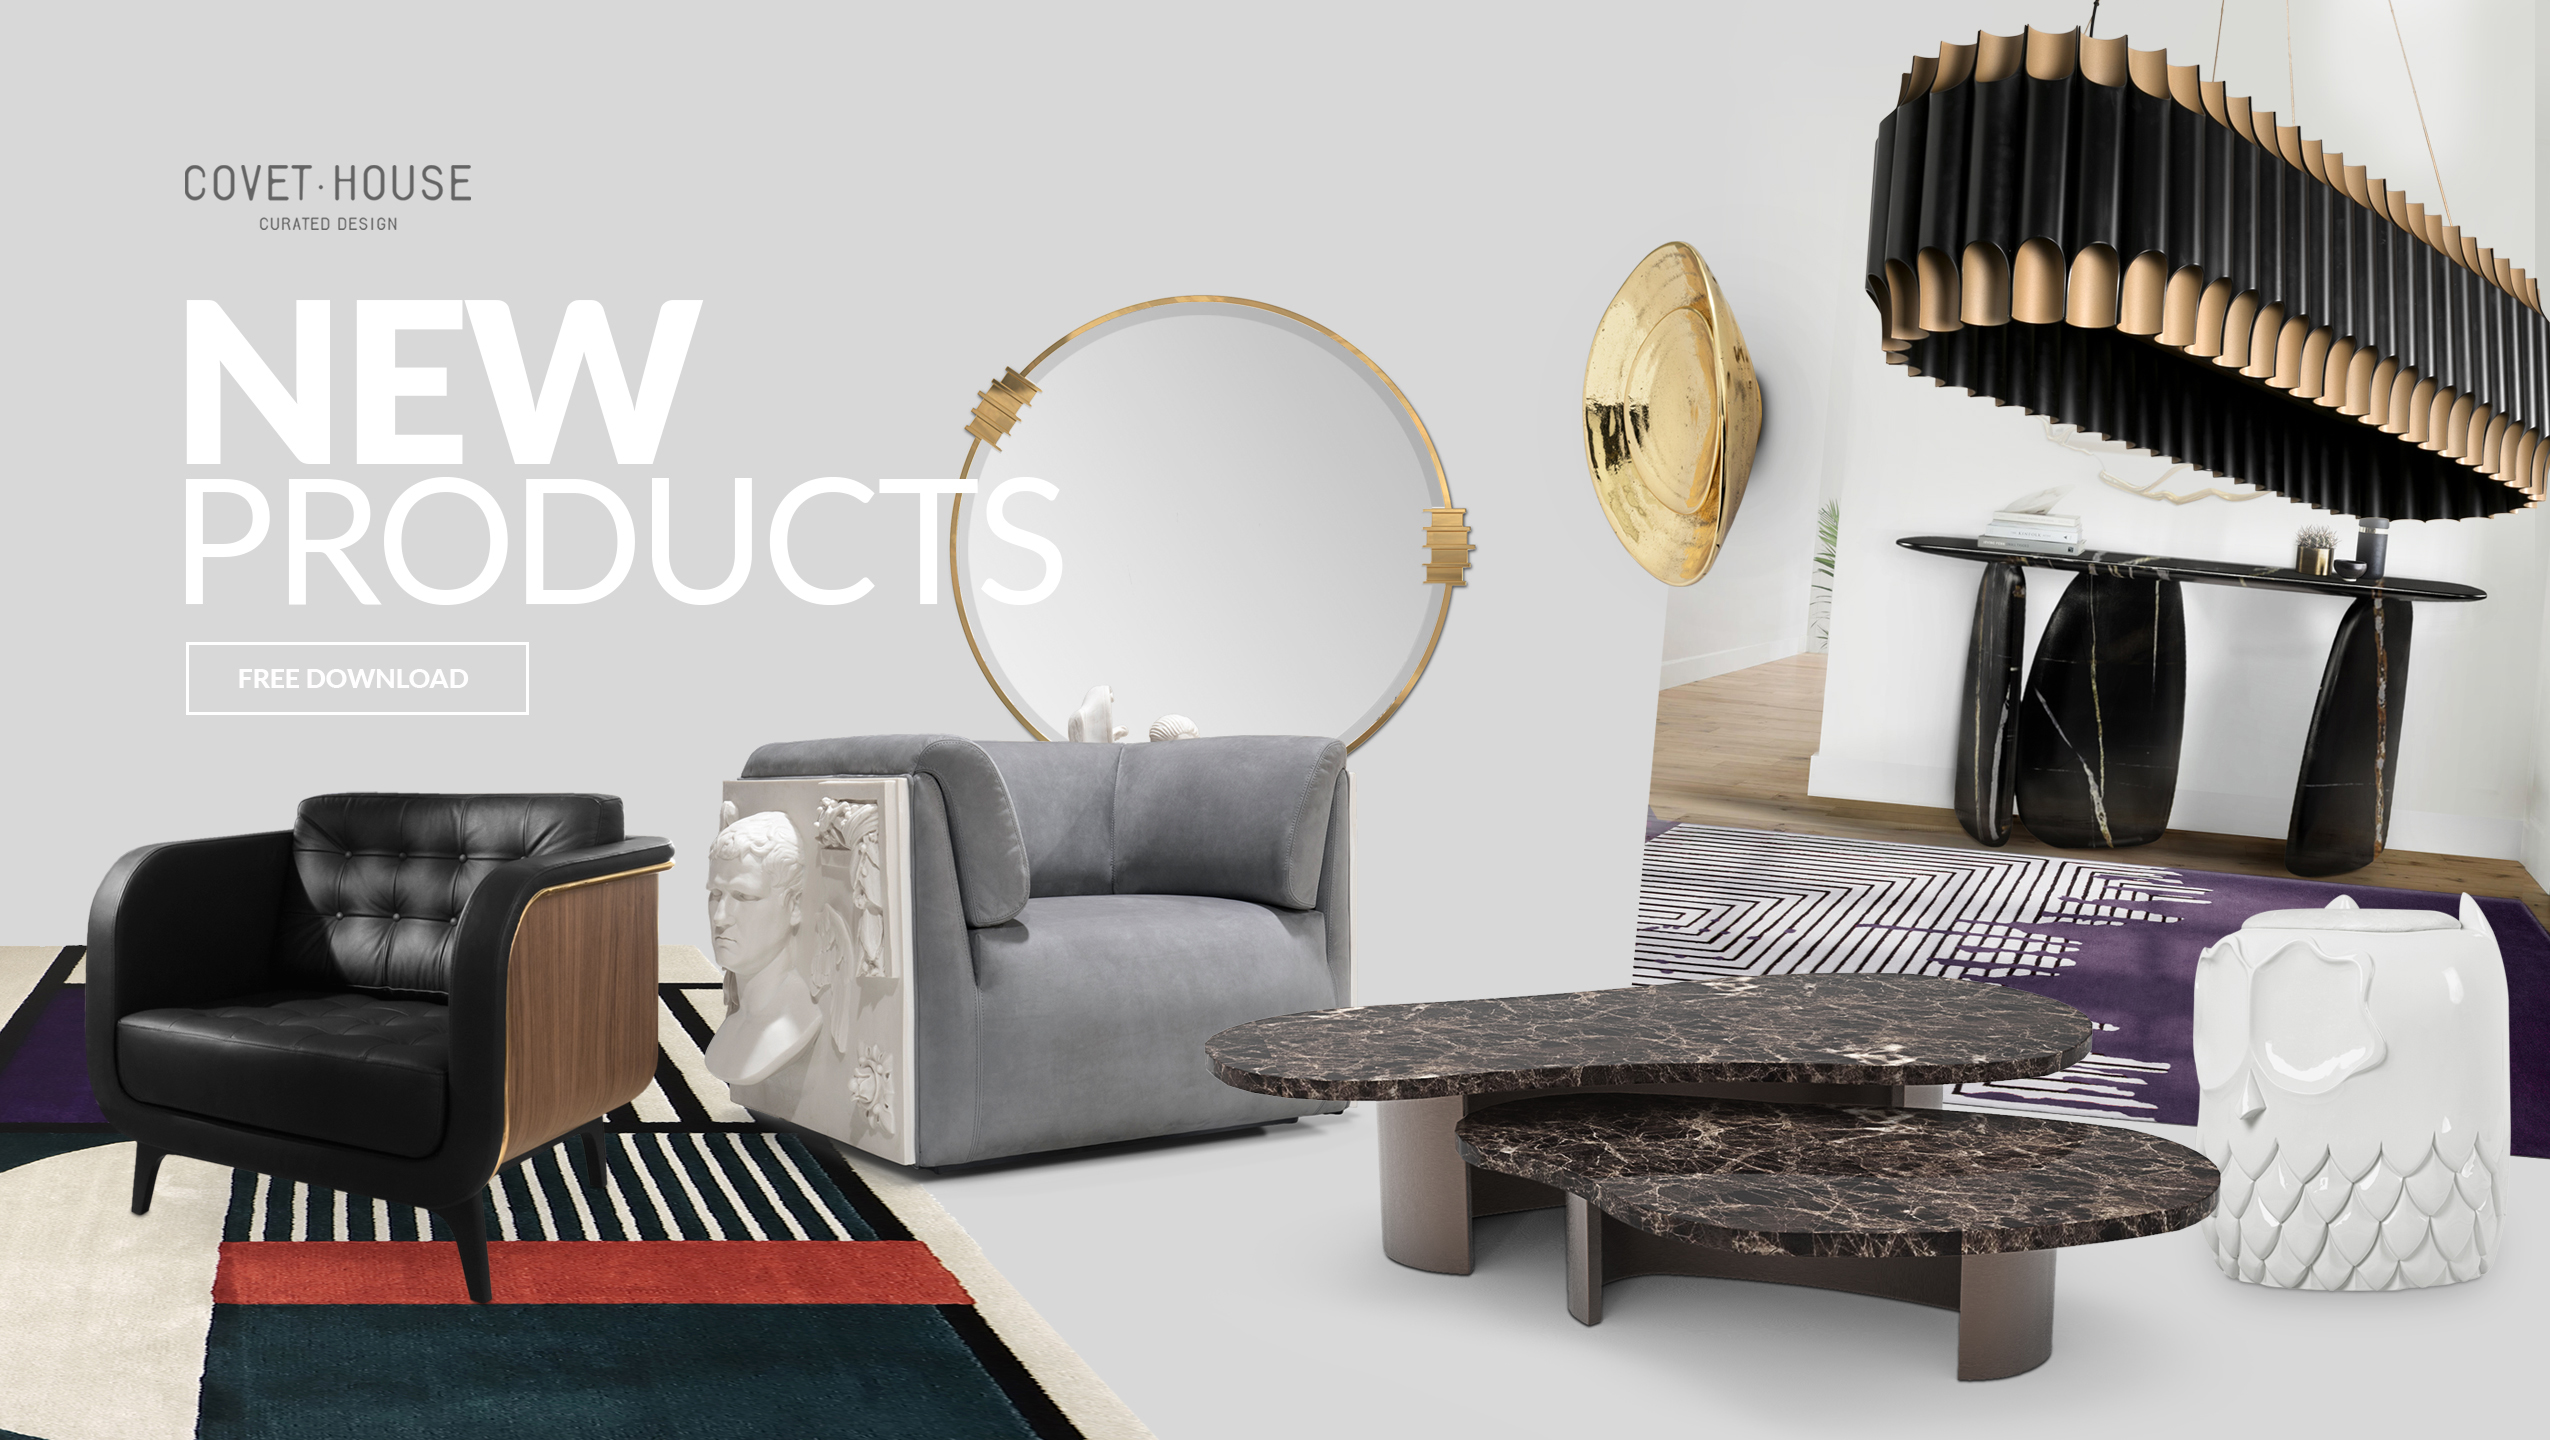 New Products 2020 maison et objet Take A Look At Maison Et Objet Trendiest New Pieces newproducts cta1